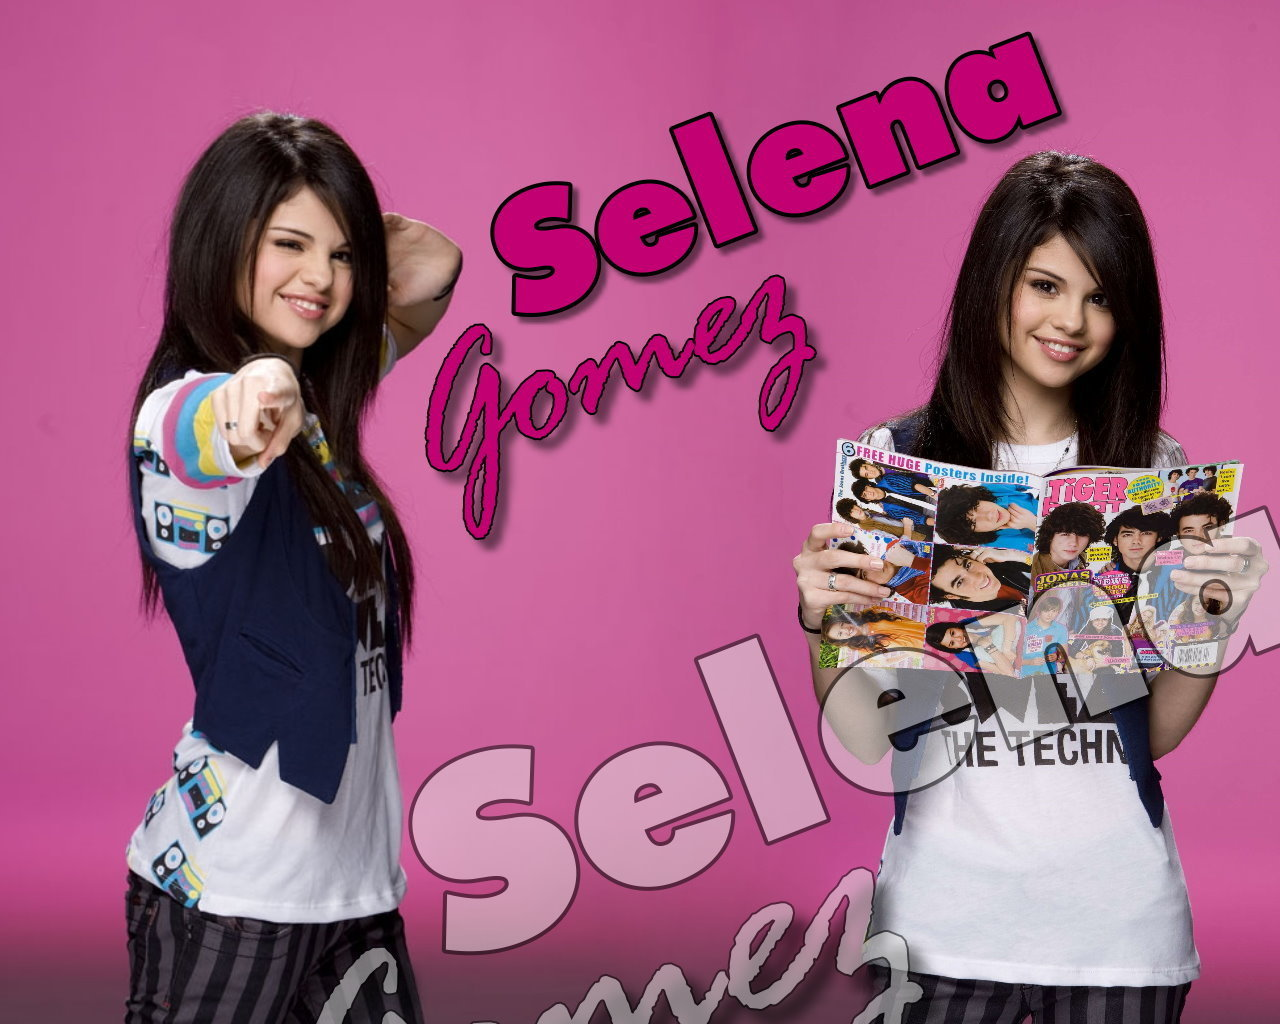 http://images2.fanpop.com/images/photos/6800000/Selena-Gomez-Wallpaper-selena-gomez-6849164-1280-1024.jpg